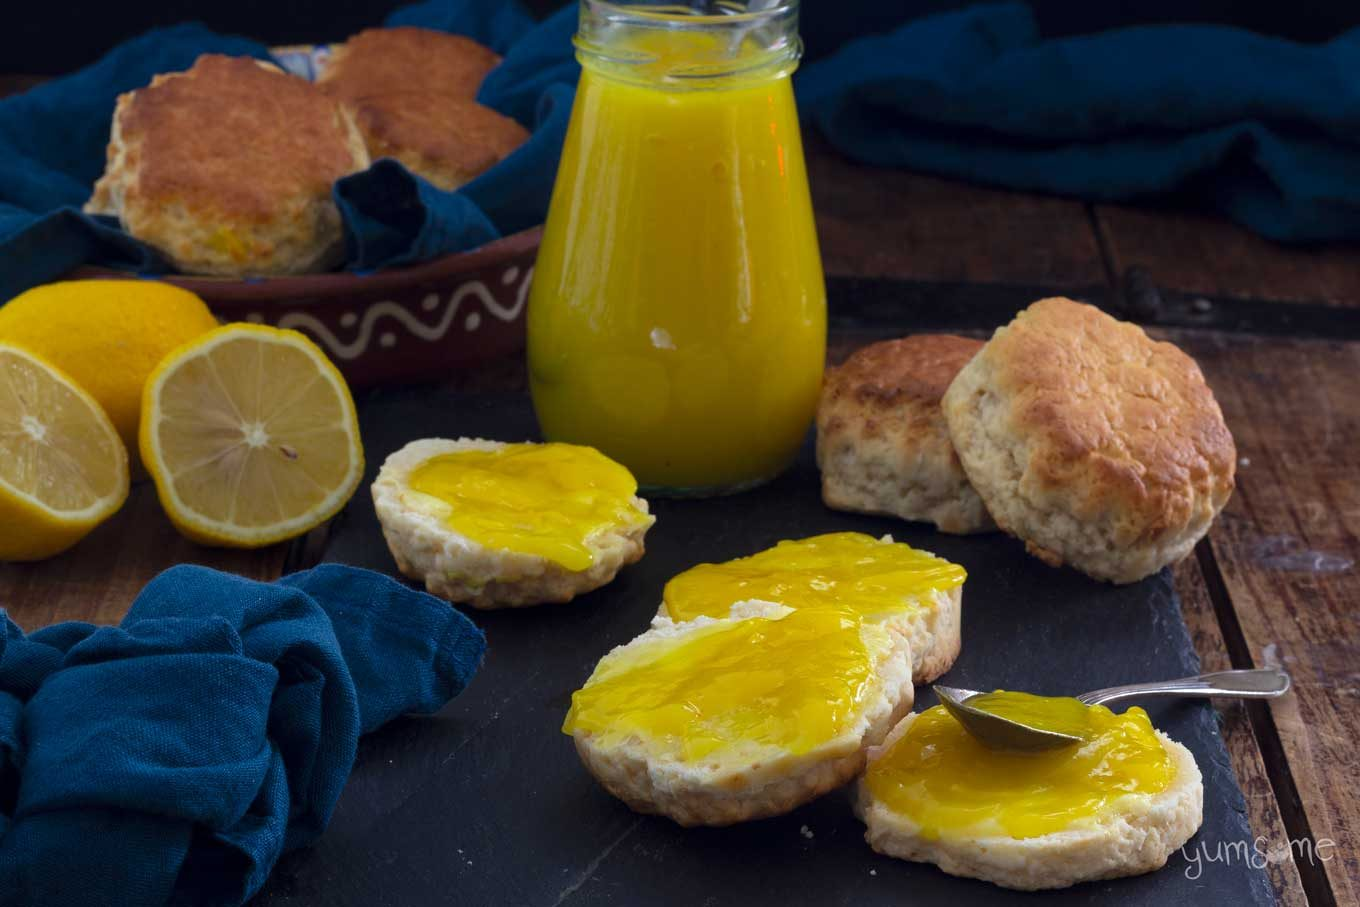 A blue napkin and some scones and lemon curd on a wooden table.